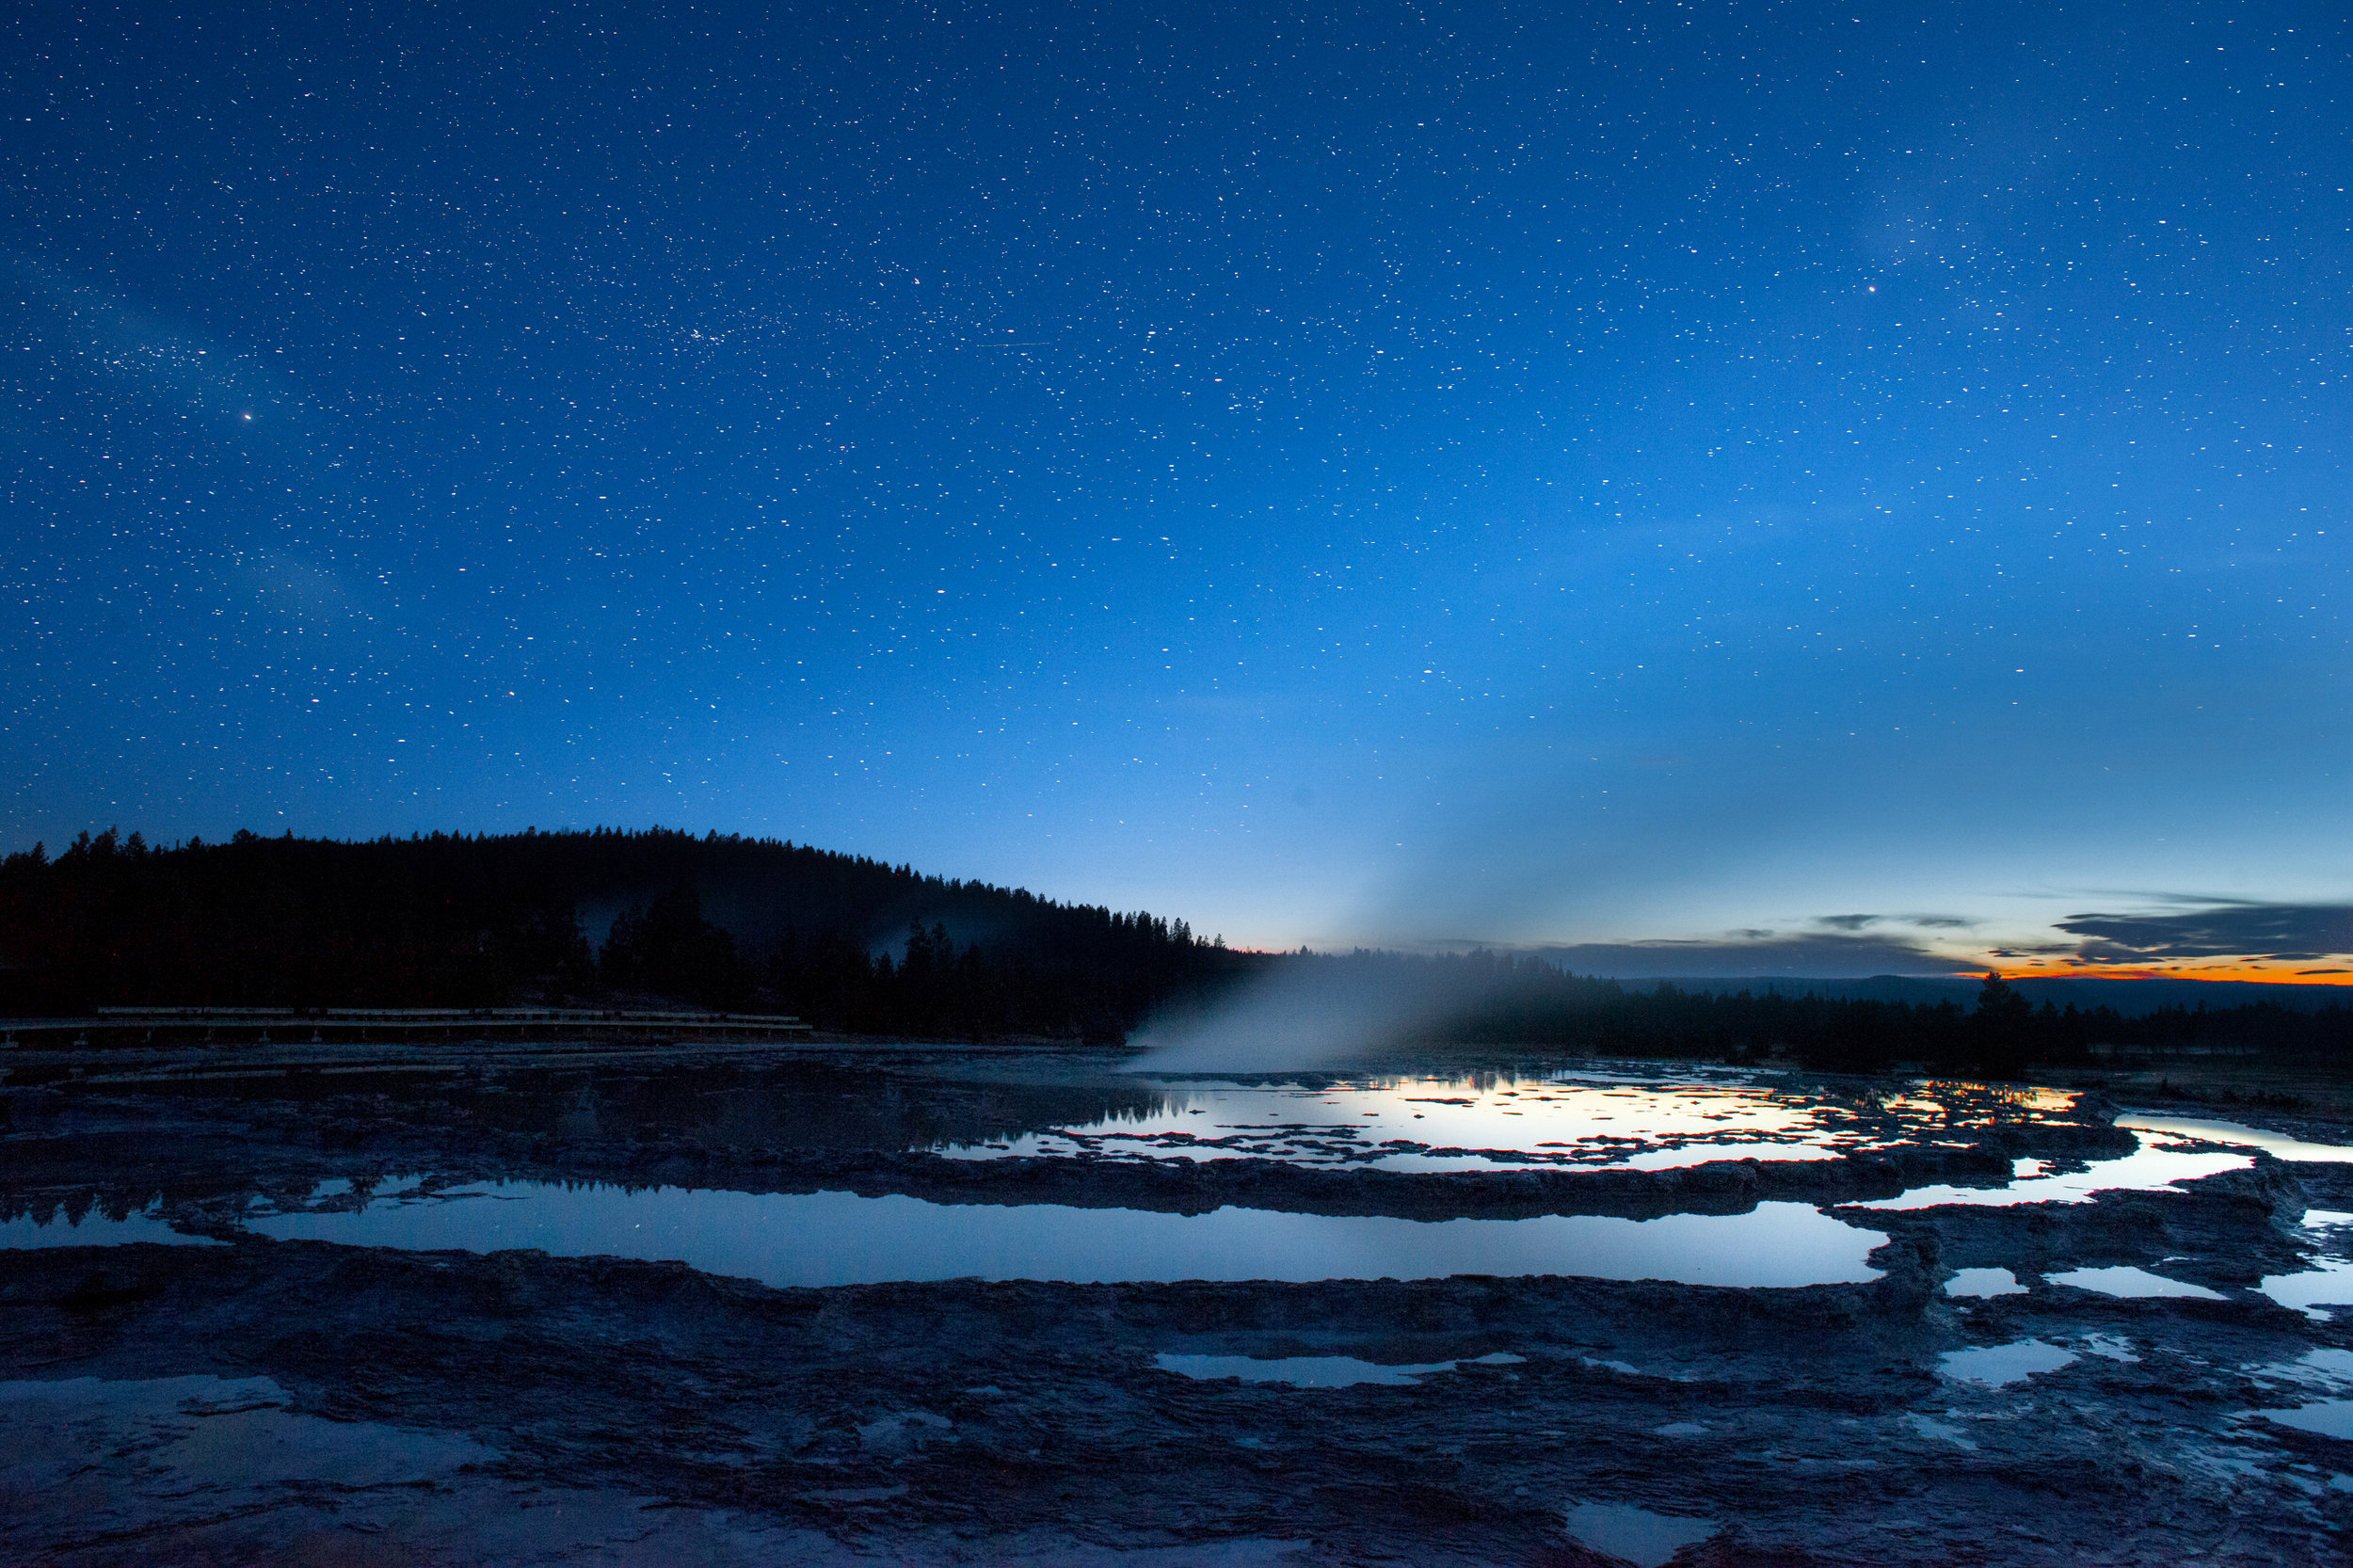 Finally A clear sky in Yellowstone NP